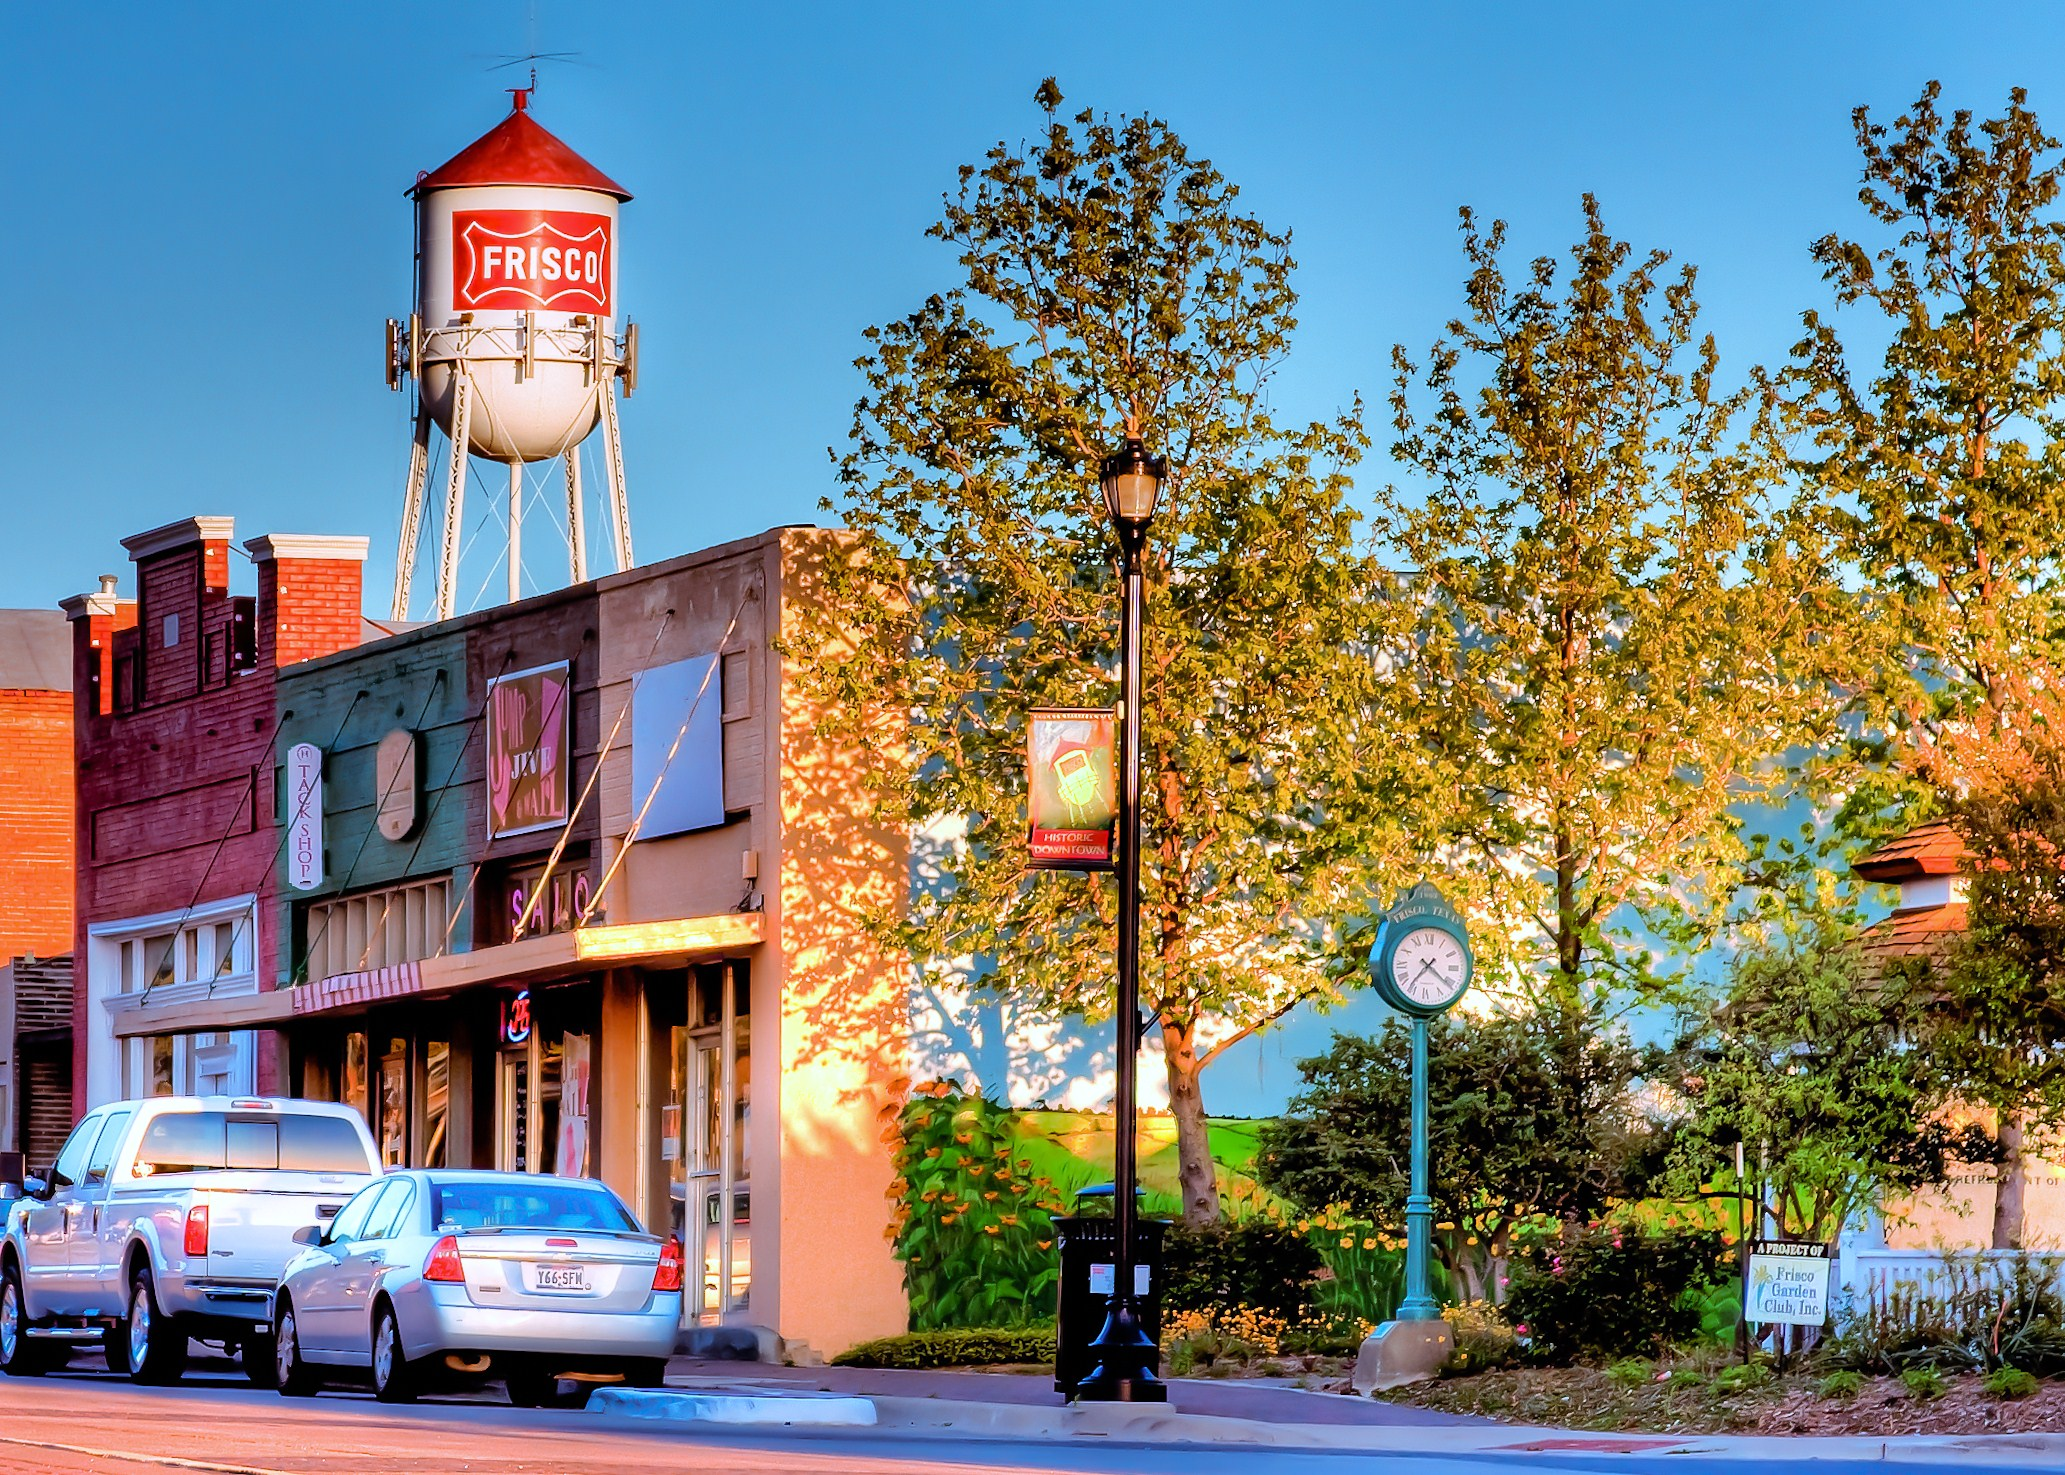 Downtown_in_the_Fall_Roger_Robinson_Submitted_for_Inaugural_2010_CVB_Photo_Contest_86f54b02-85e9-4a29-a4fa-94eaaa3f25c7